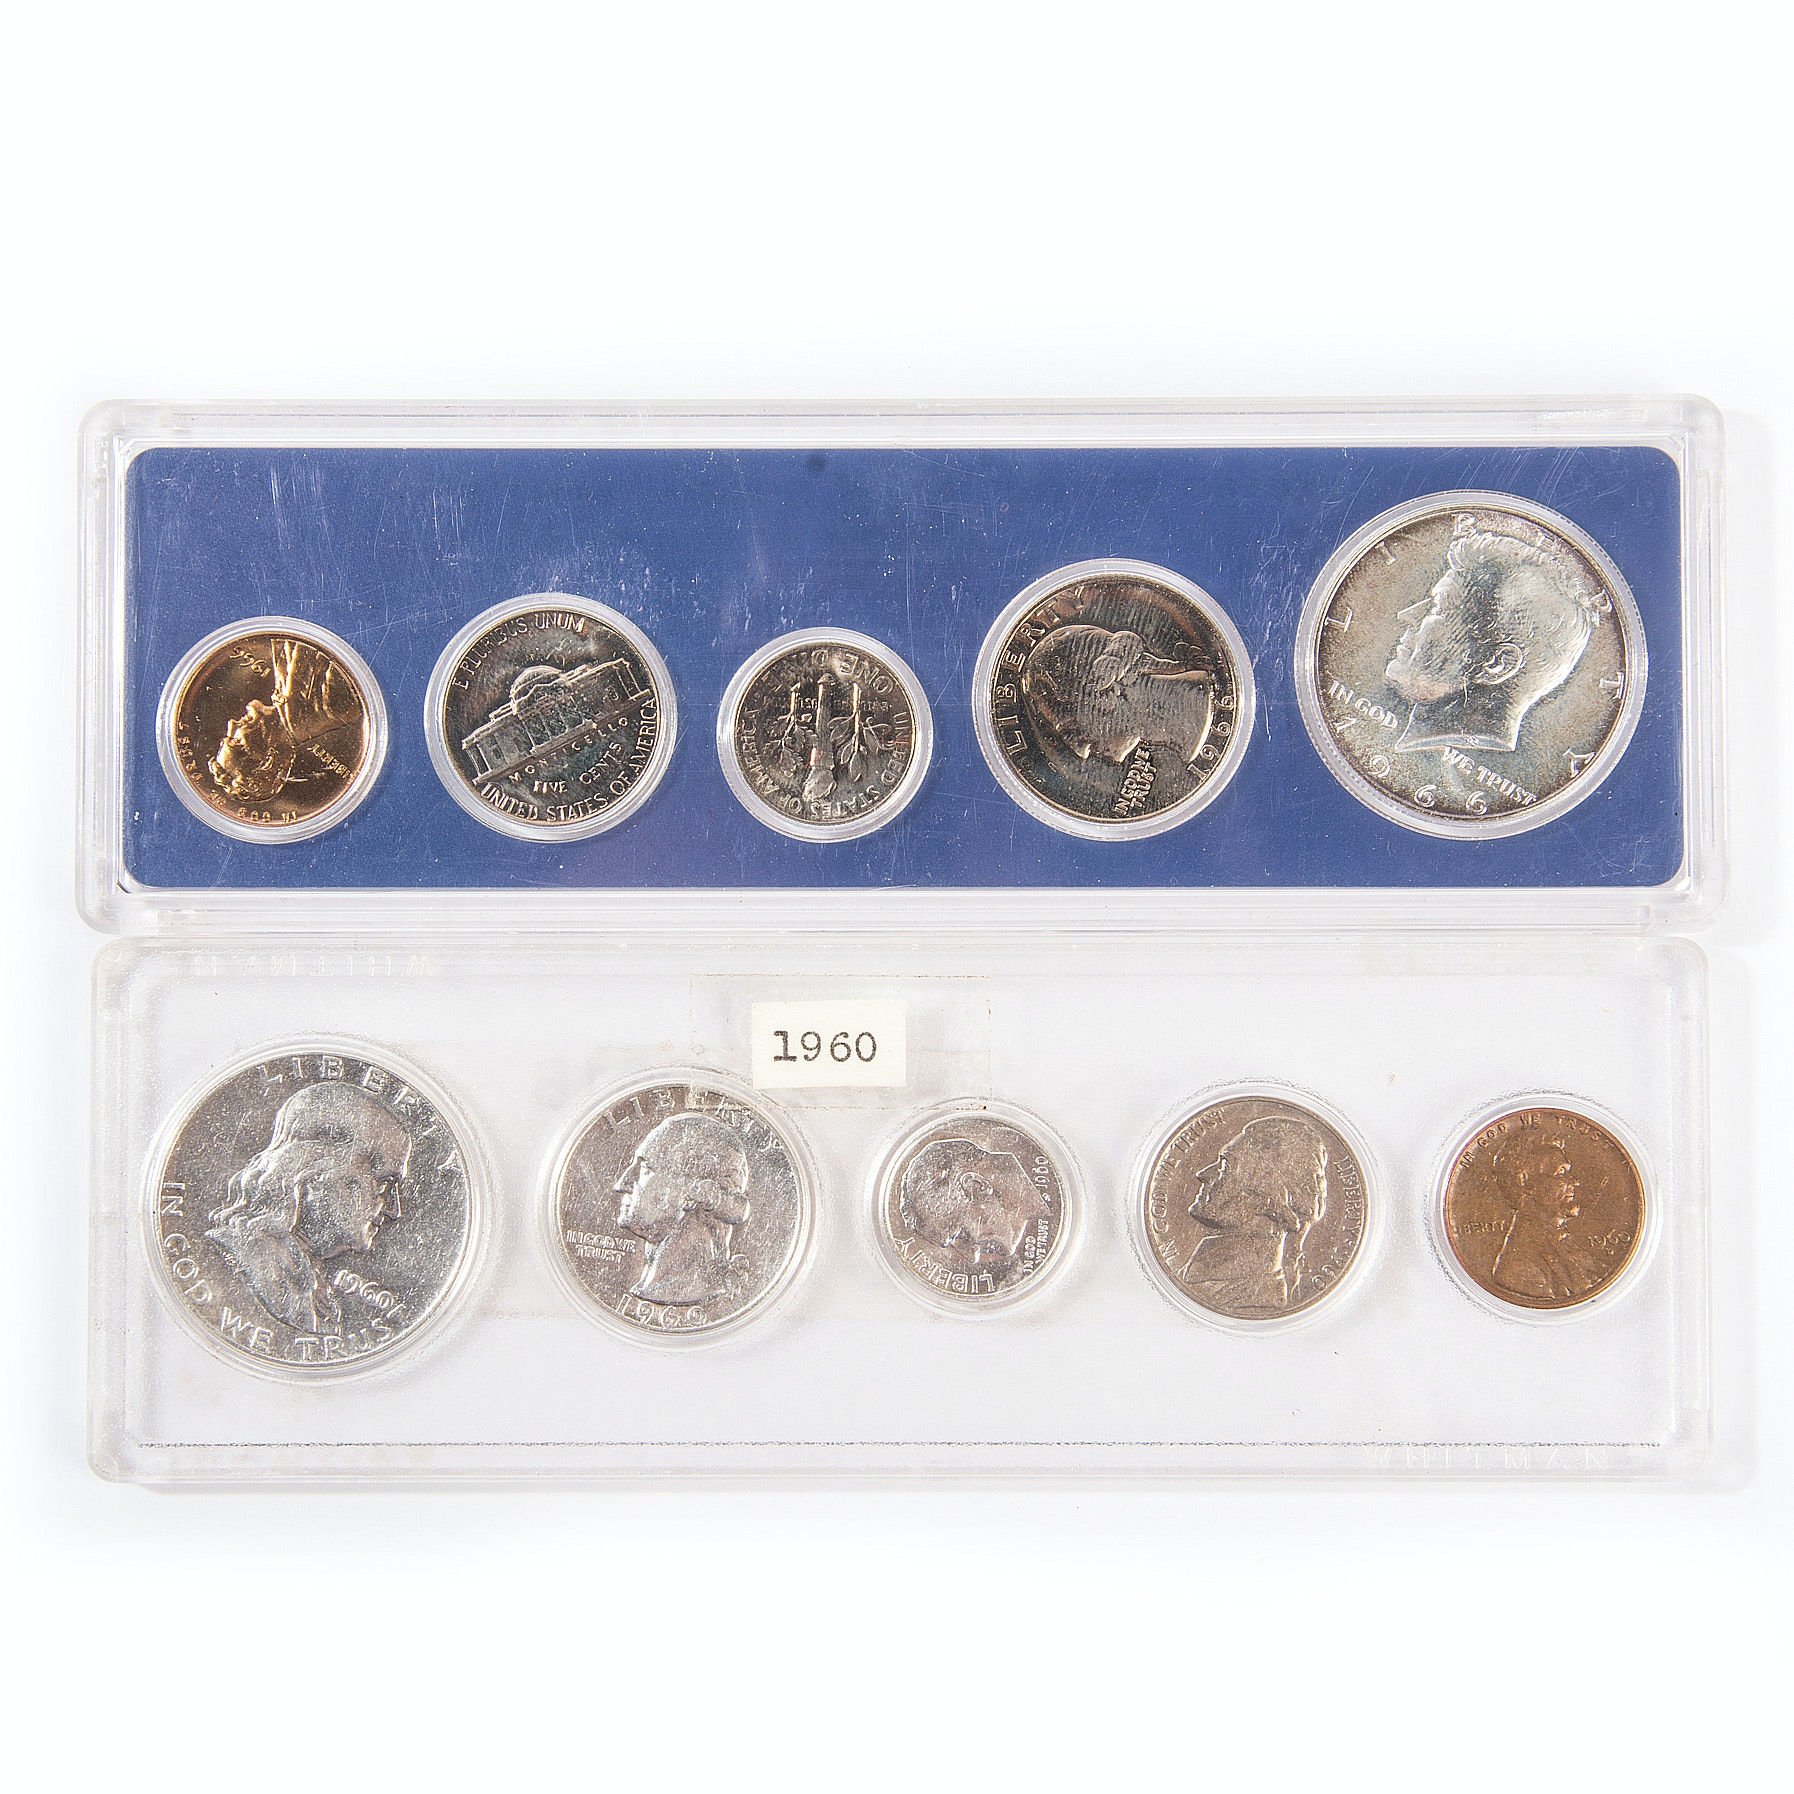 1960 and 1966 Mint Sets